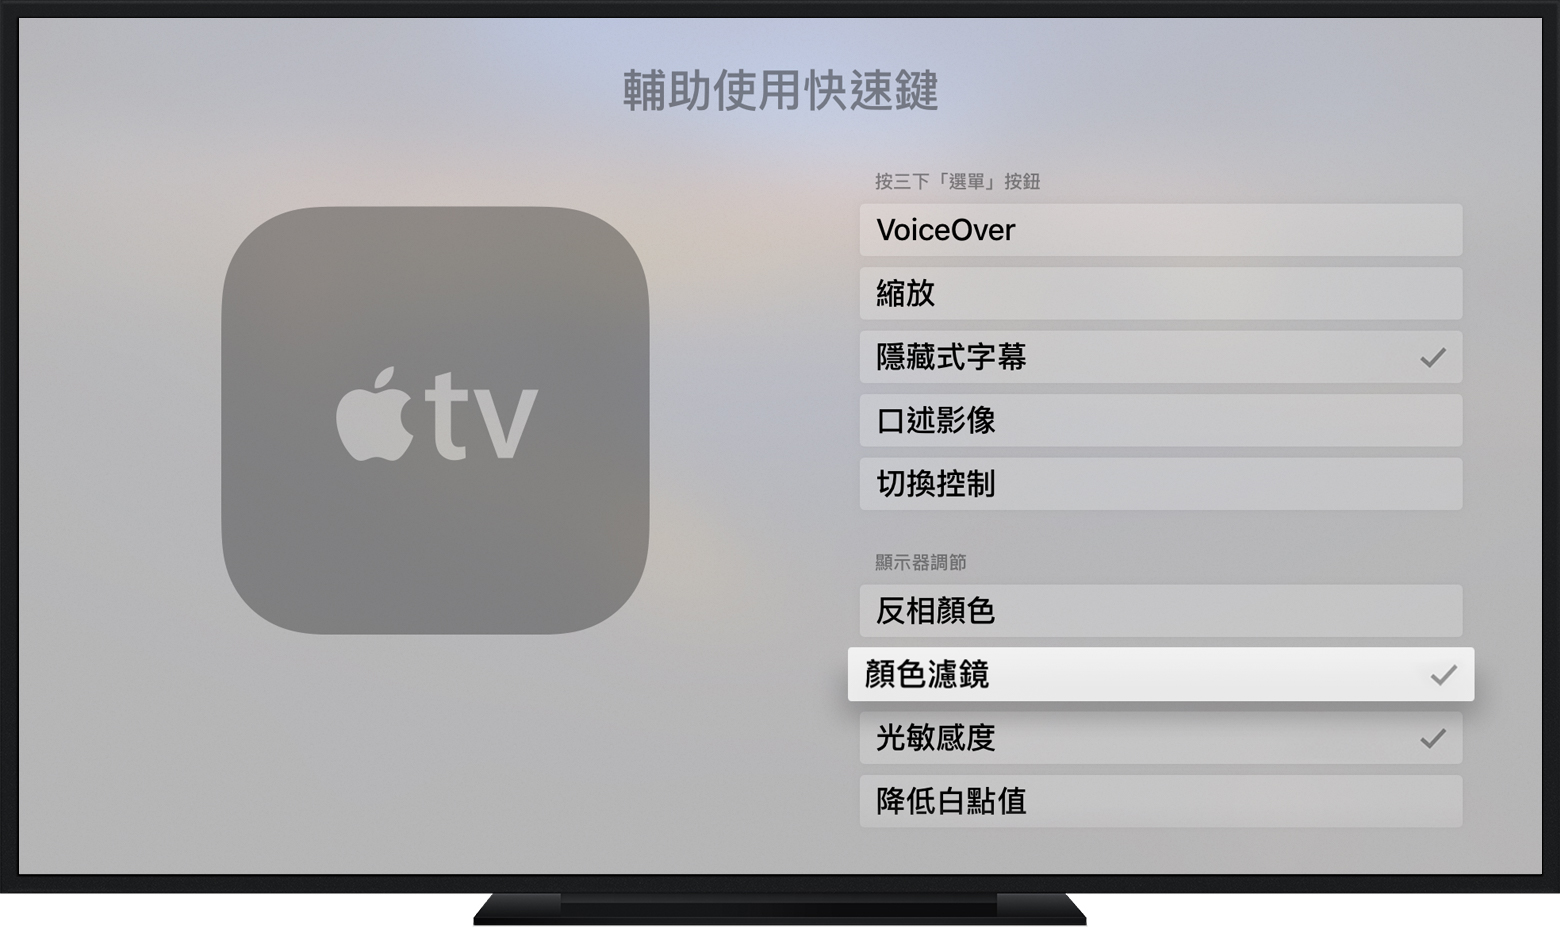 選取要在 Apple TV(第 4 代)上設定快速鍵的功能